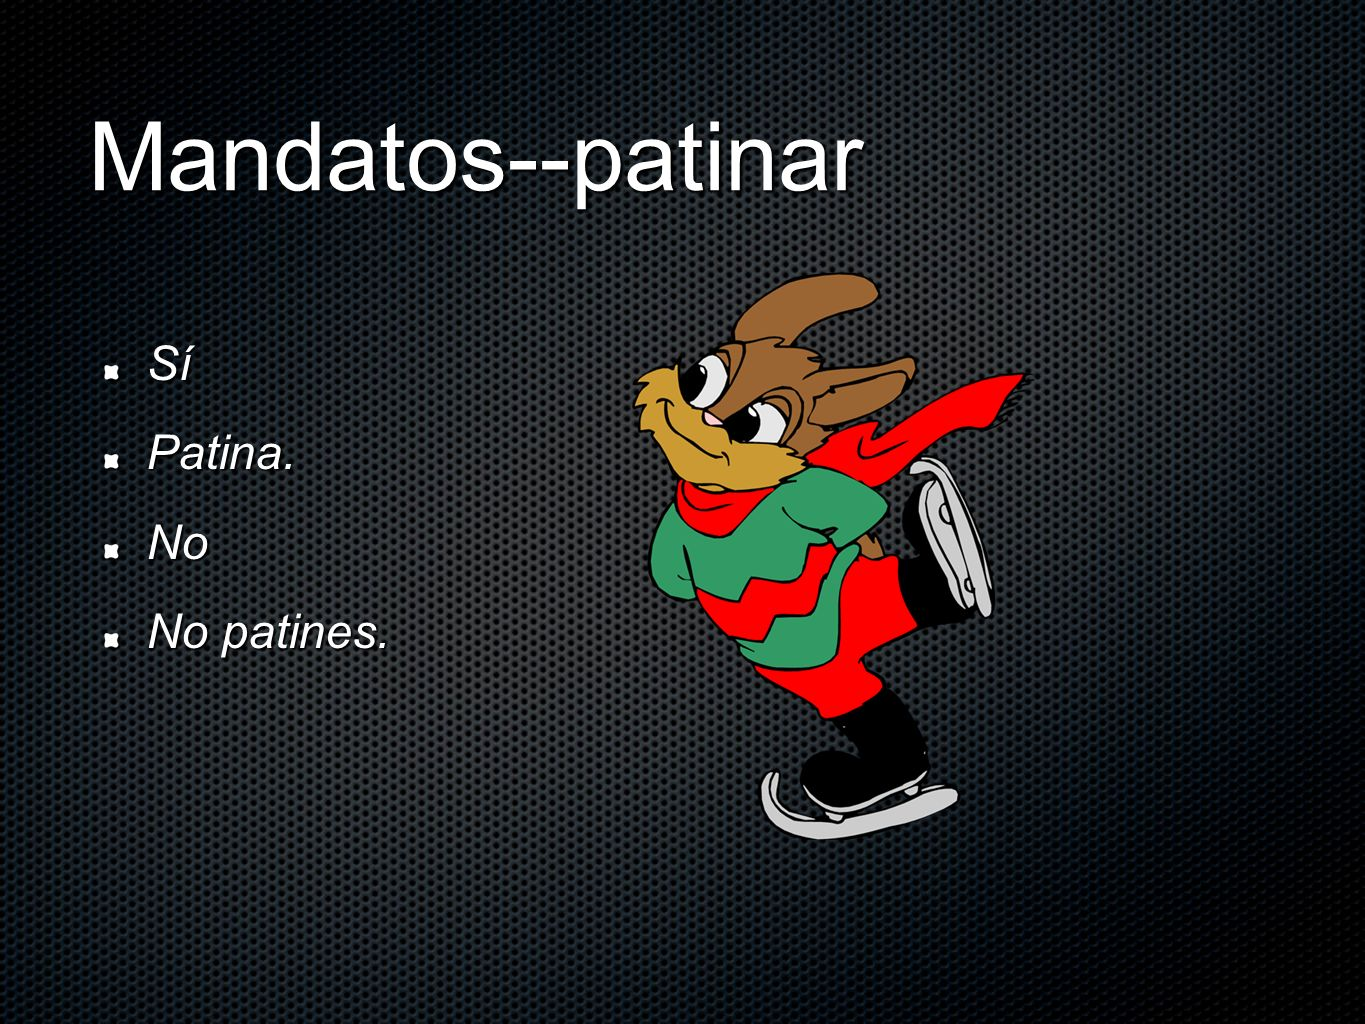 Mandatos--patinar Sí Patina. No No patines.